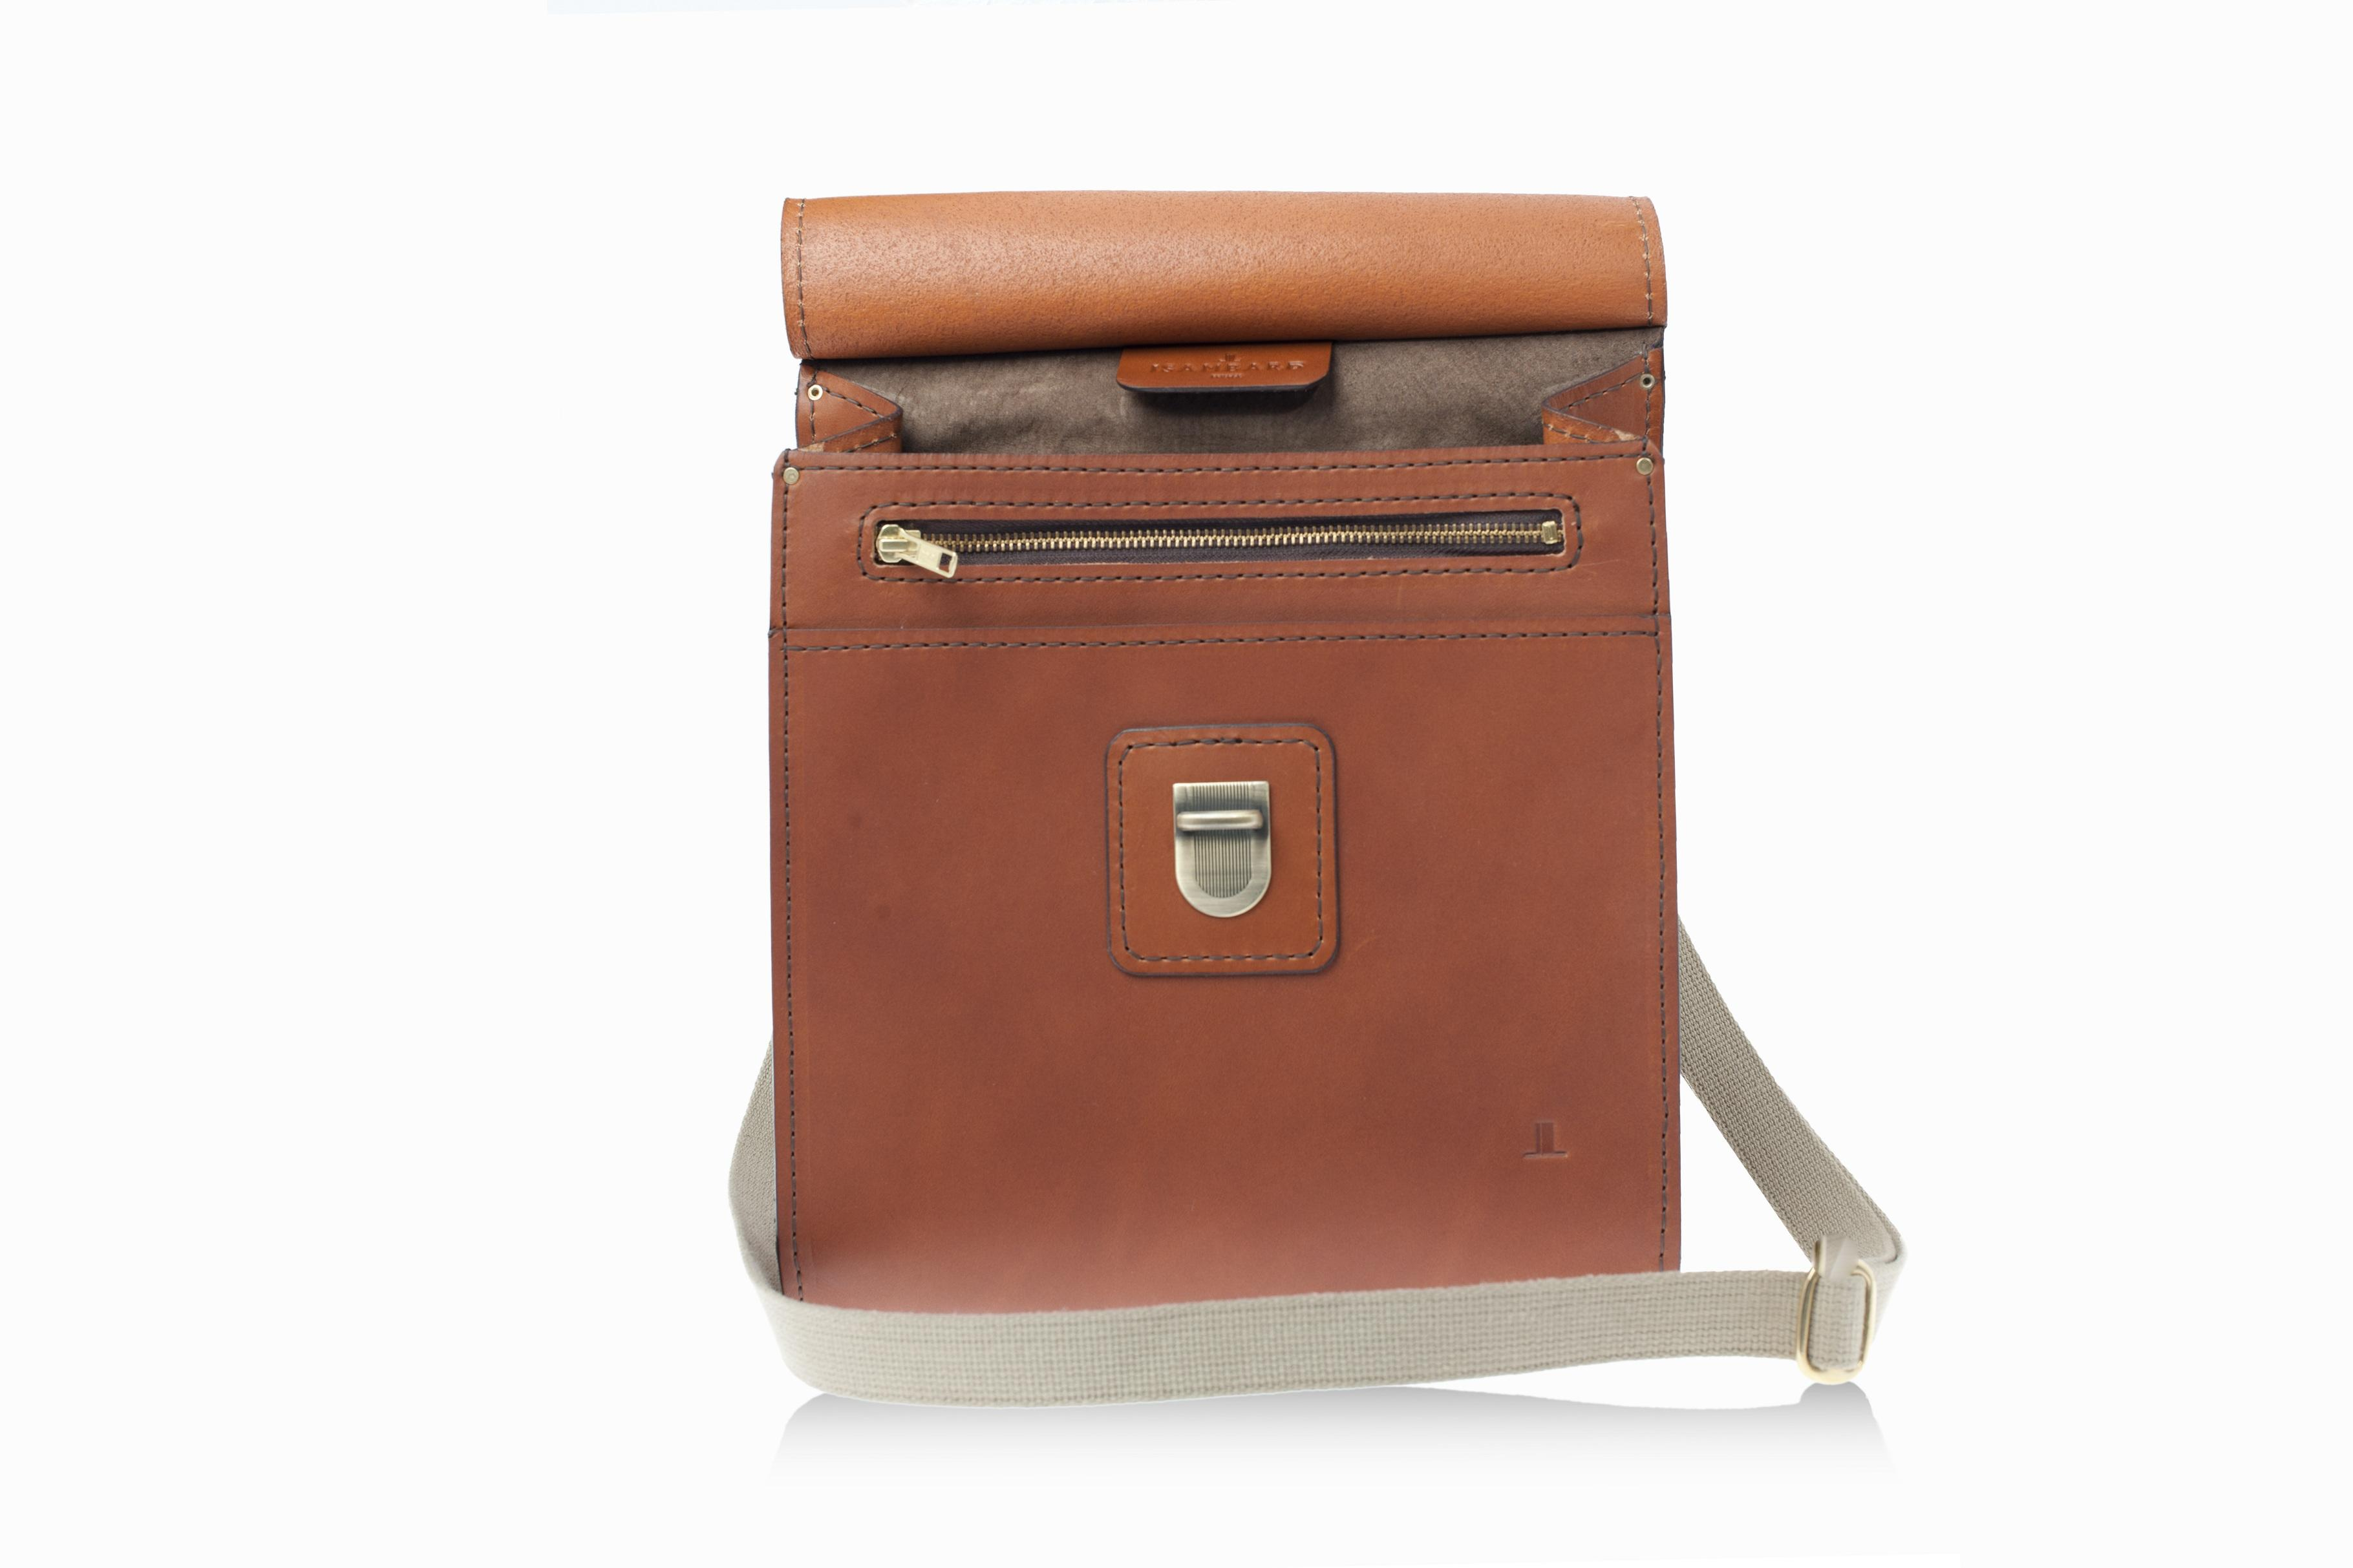 b173405a78 Outlet - ISAMBARD Large Clifton Messenger - Saddle Bag In Cognac ...